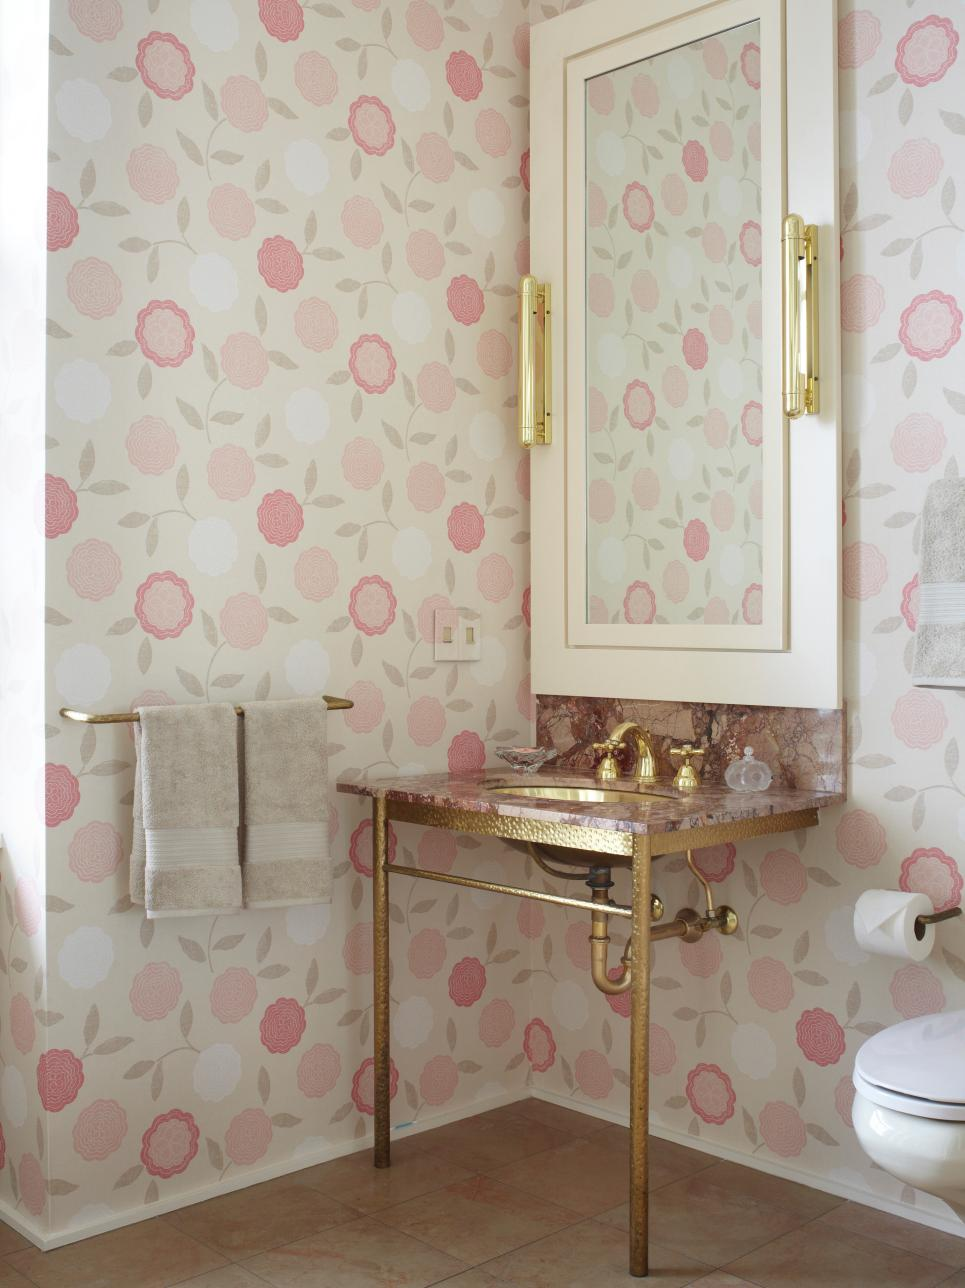 18 bathrooms for shabby chic design inspiration for Bathroom wallpaper designs